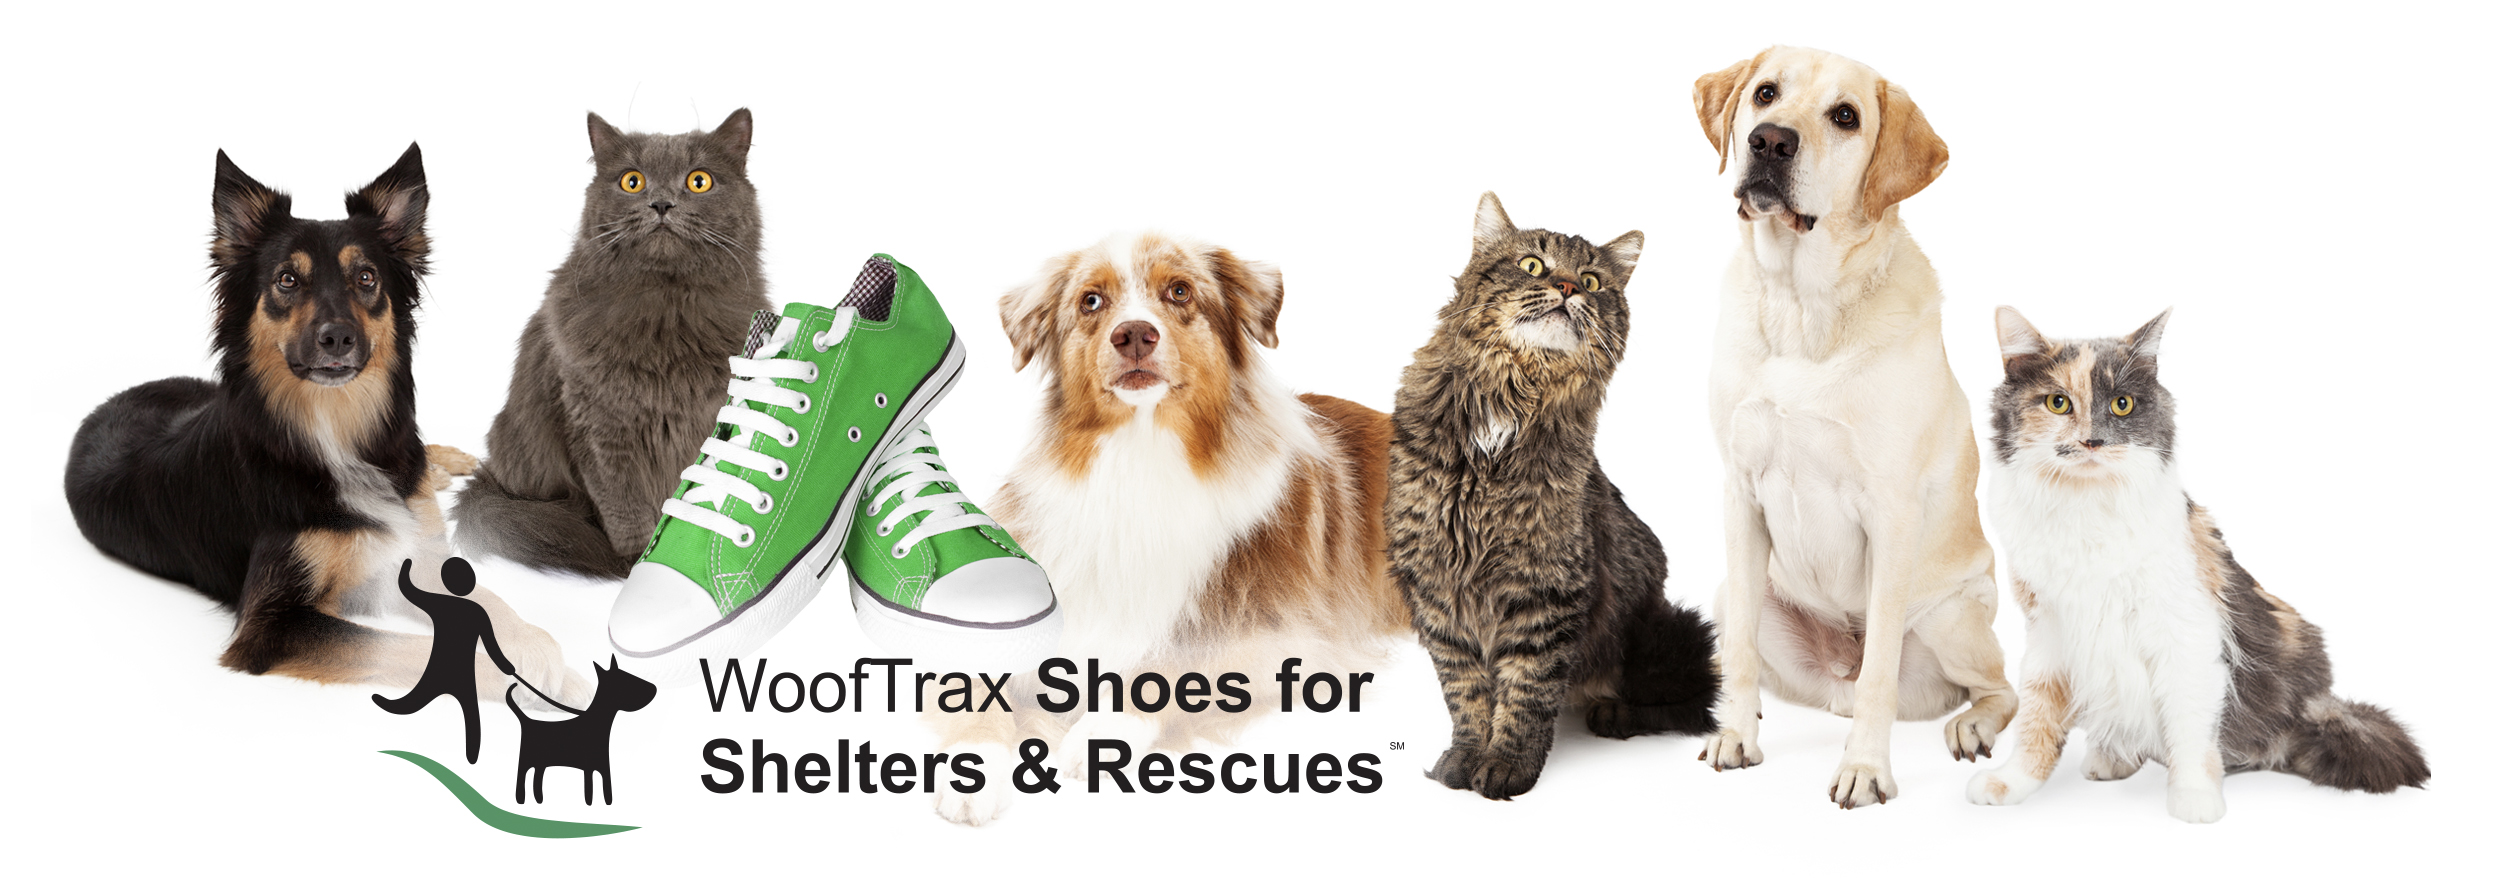 WoofTrax Shoes for Shelters & Rescues in Partnership with Funds2Orgs